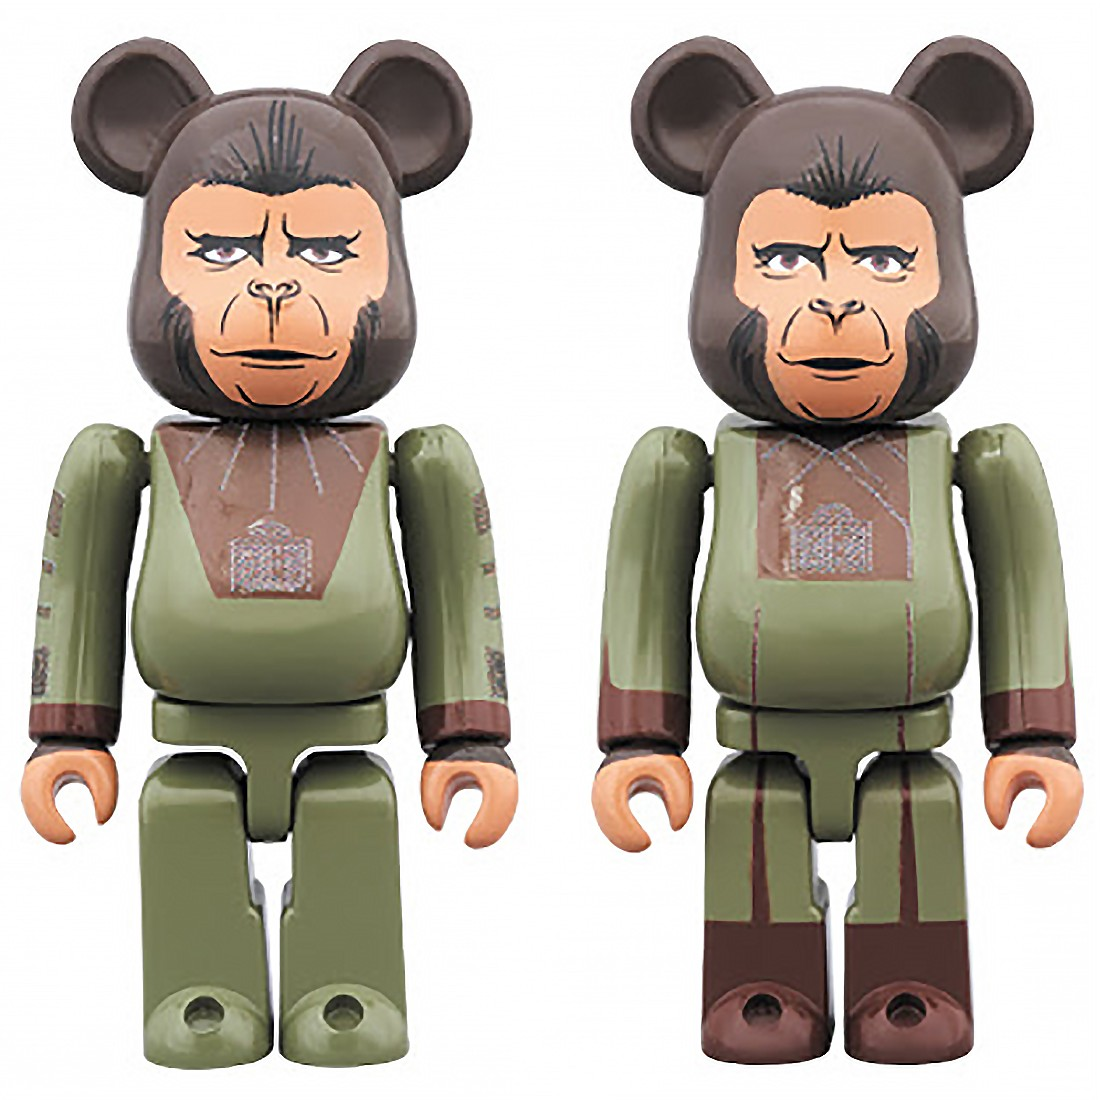 PREORDER - Medicom Planet Of The Apes Cornelius And Zira 100% Bearbrick Figure 2 Pack Set (green)